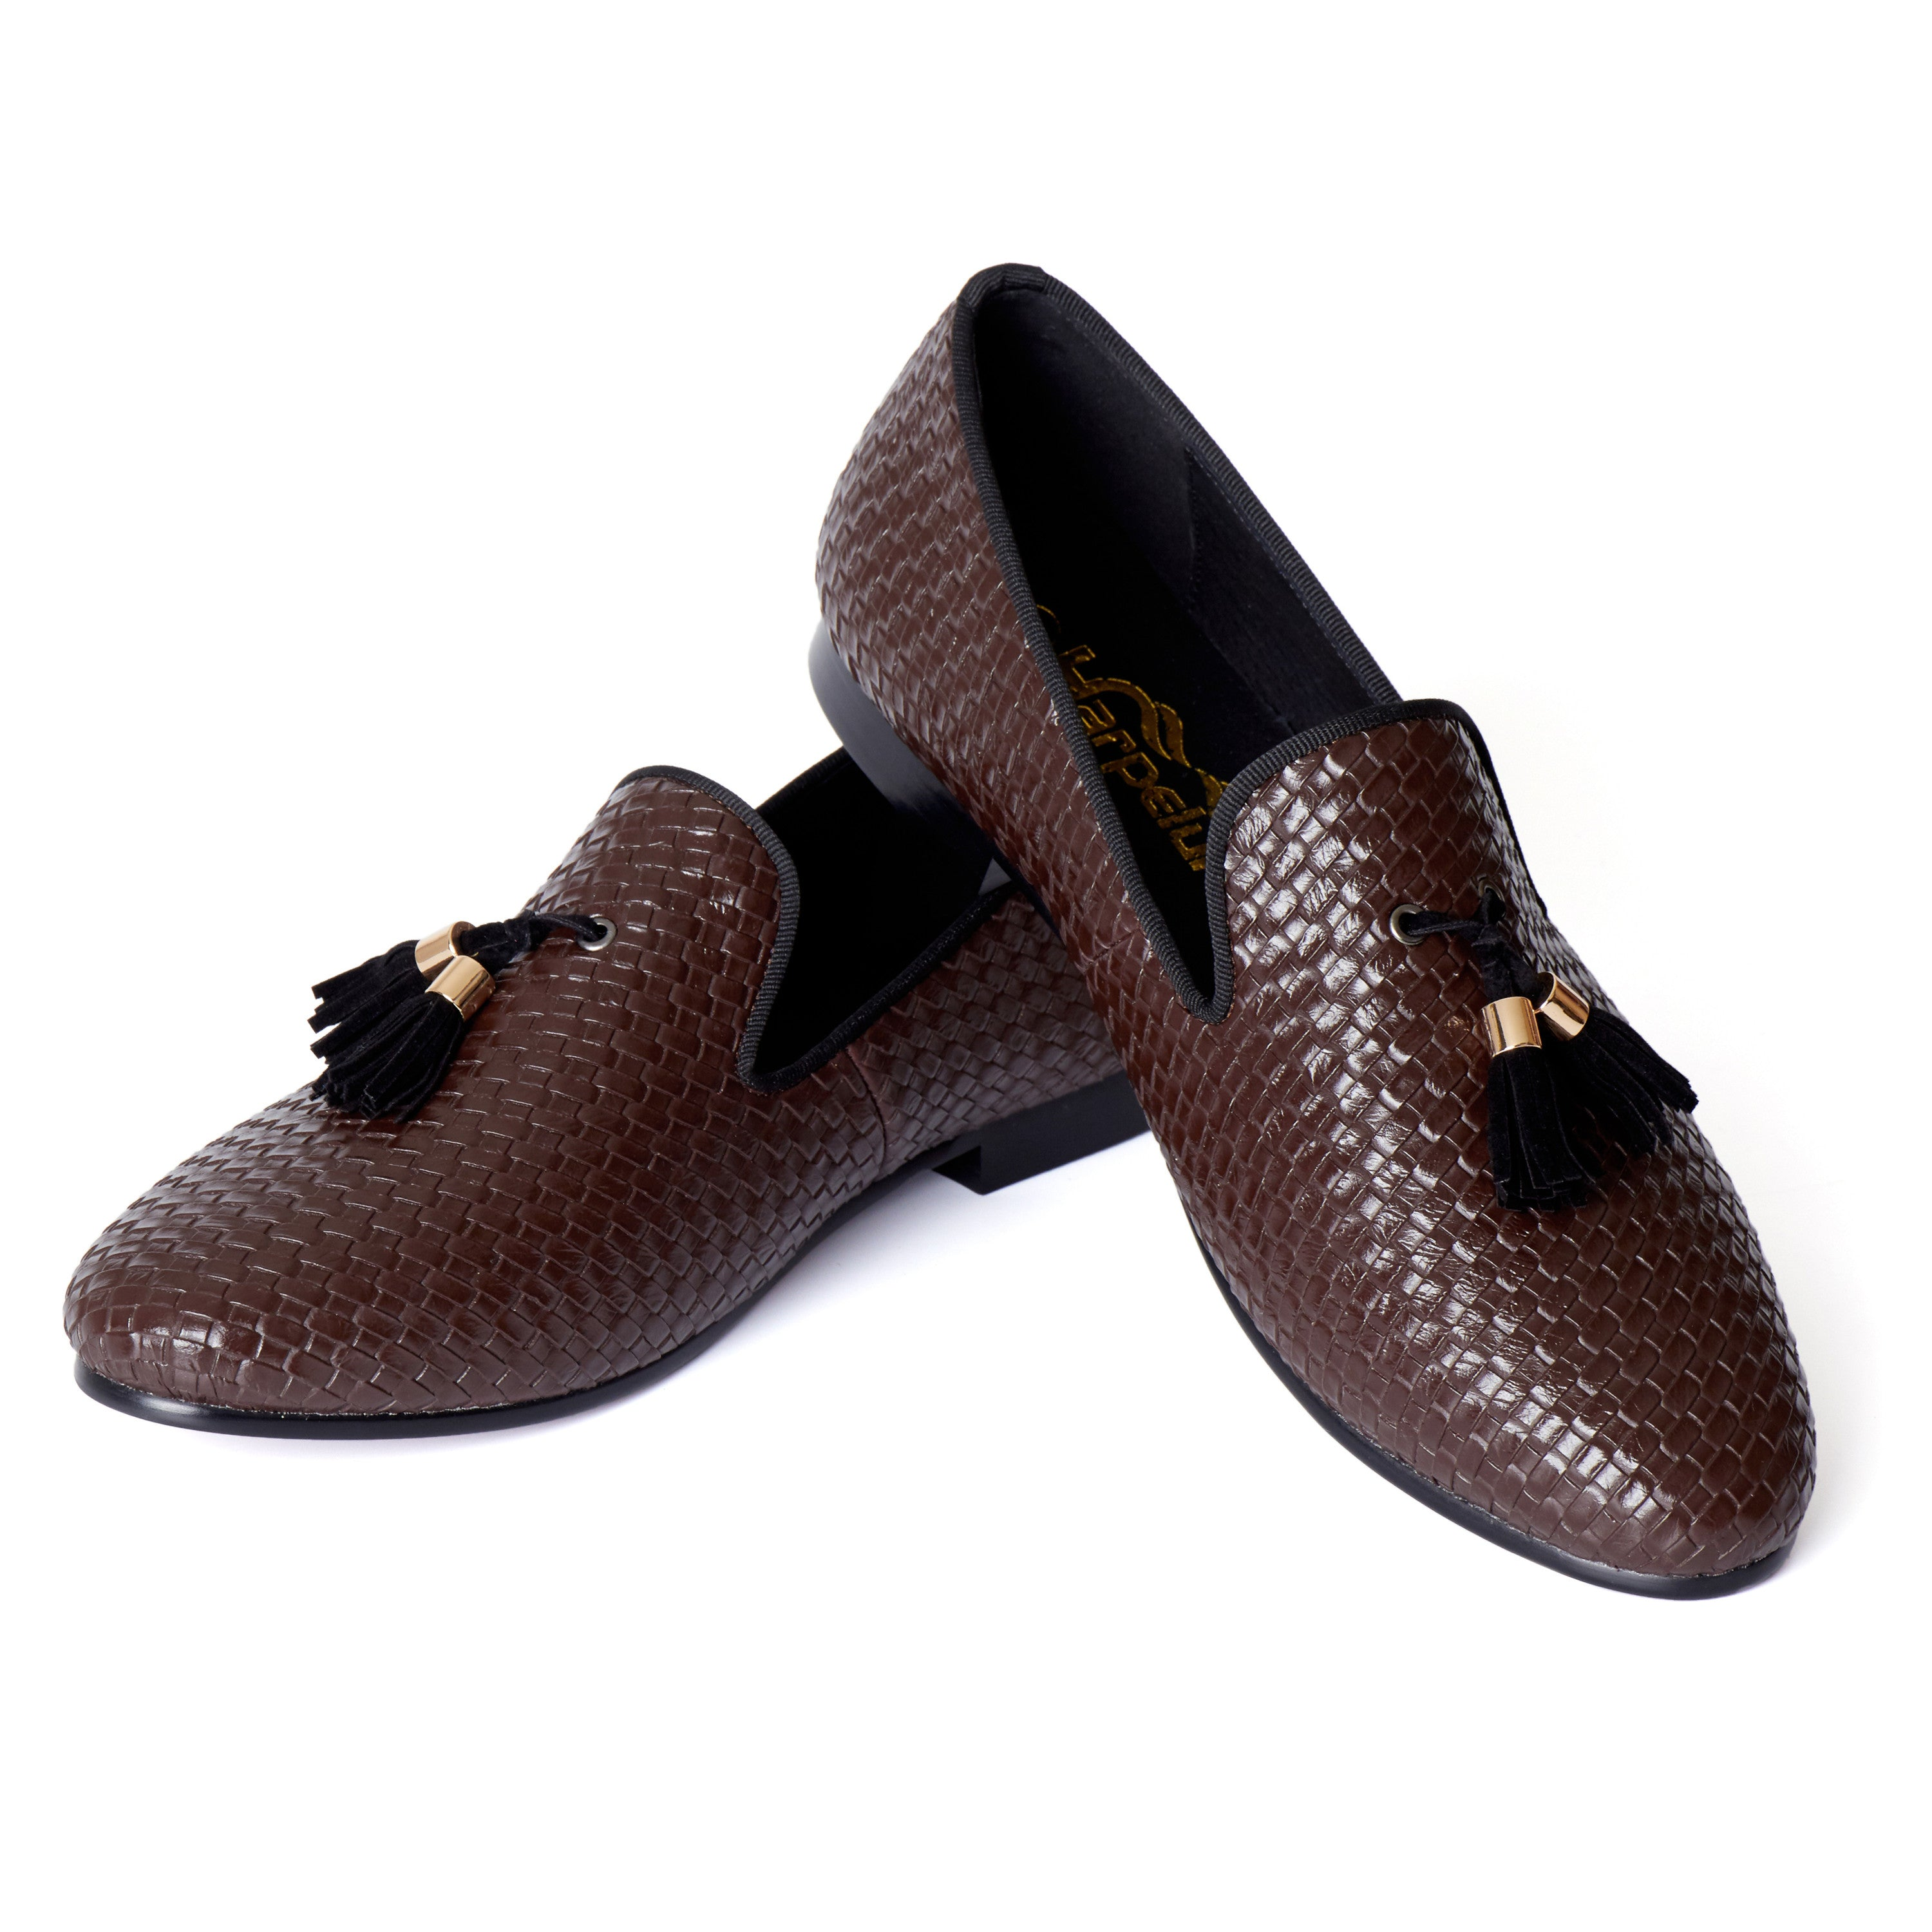 Tasseled Braided Woven Leather Men Loafers Shoes - FanFreakz